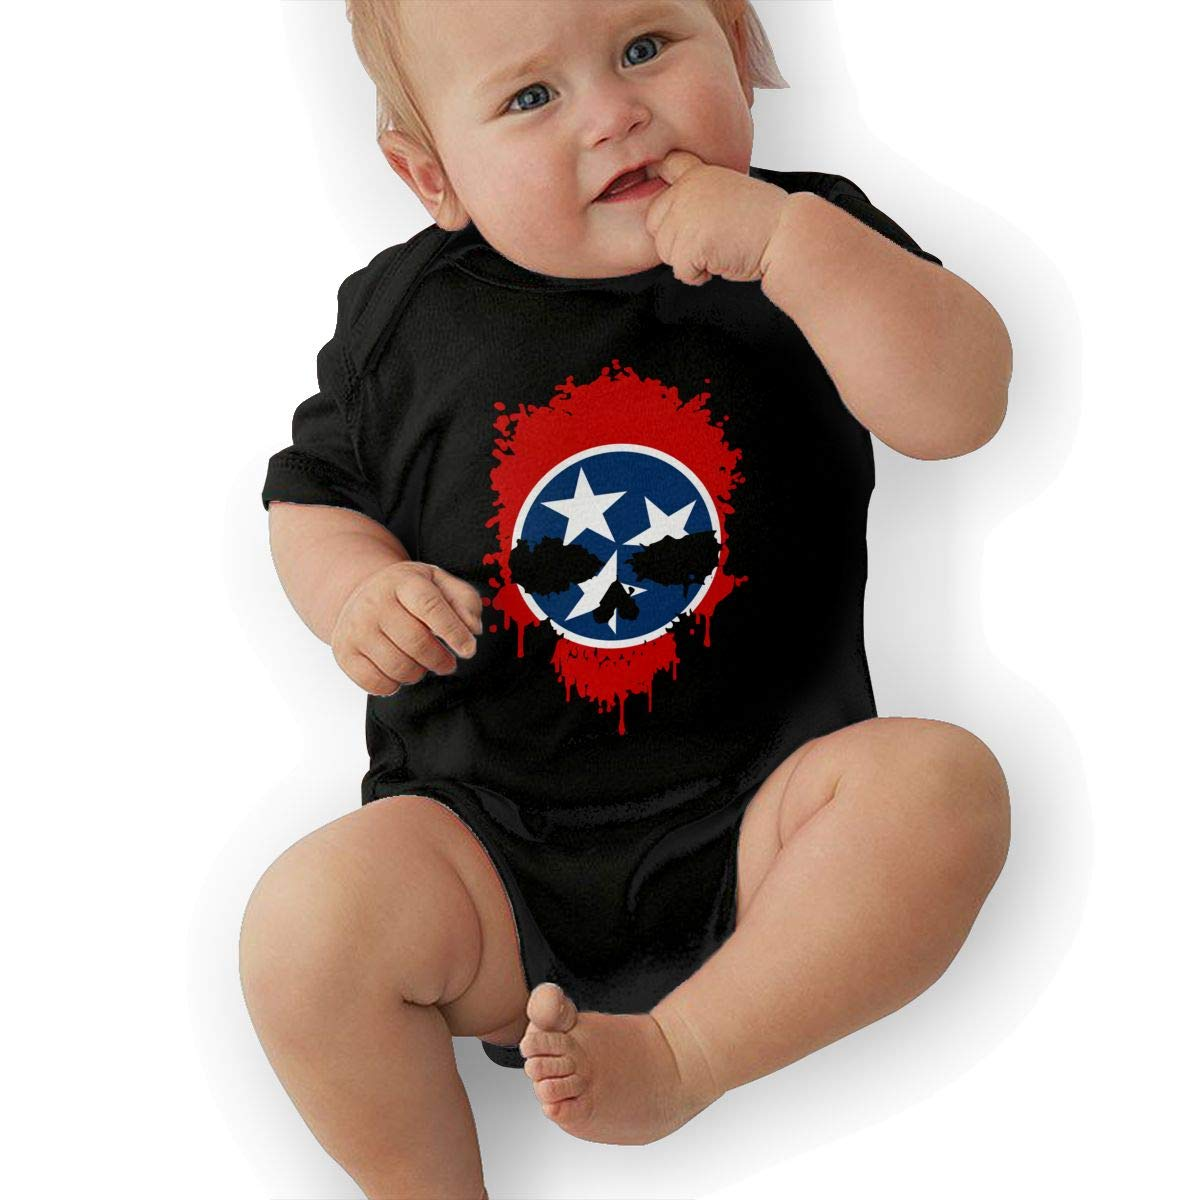 U88oi-8 Short Sleeve Cotton Rompers for Baby Boys and Girls Fashion Tennessee Skull Sleepwear